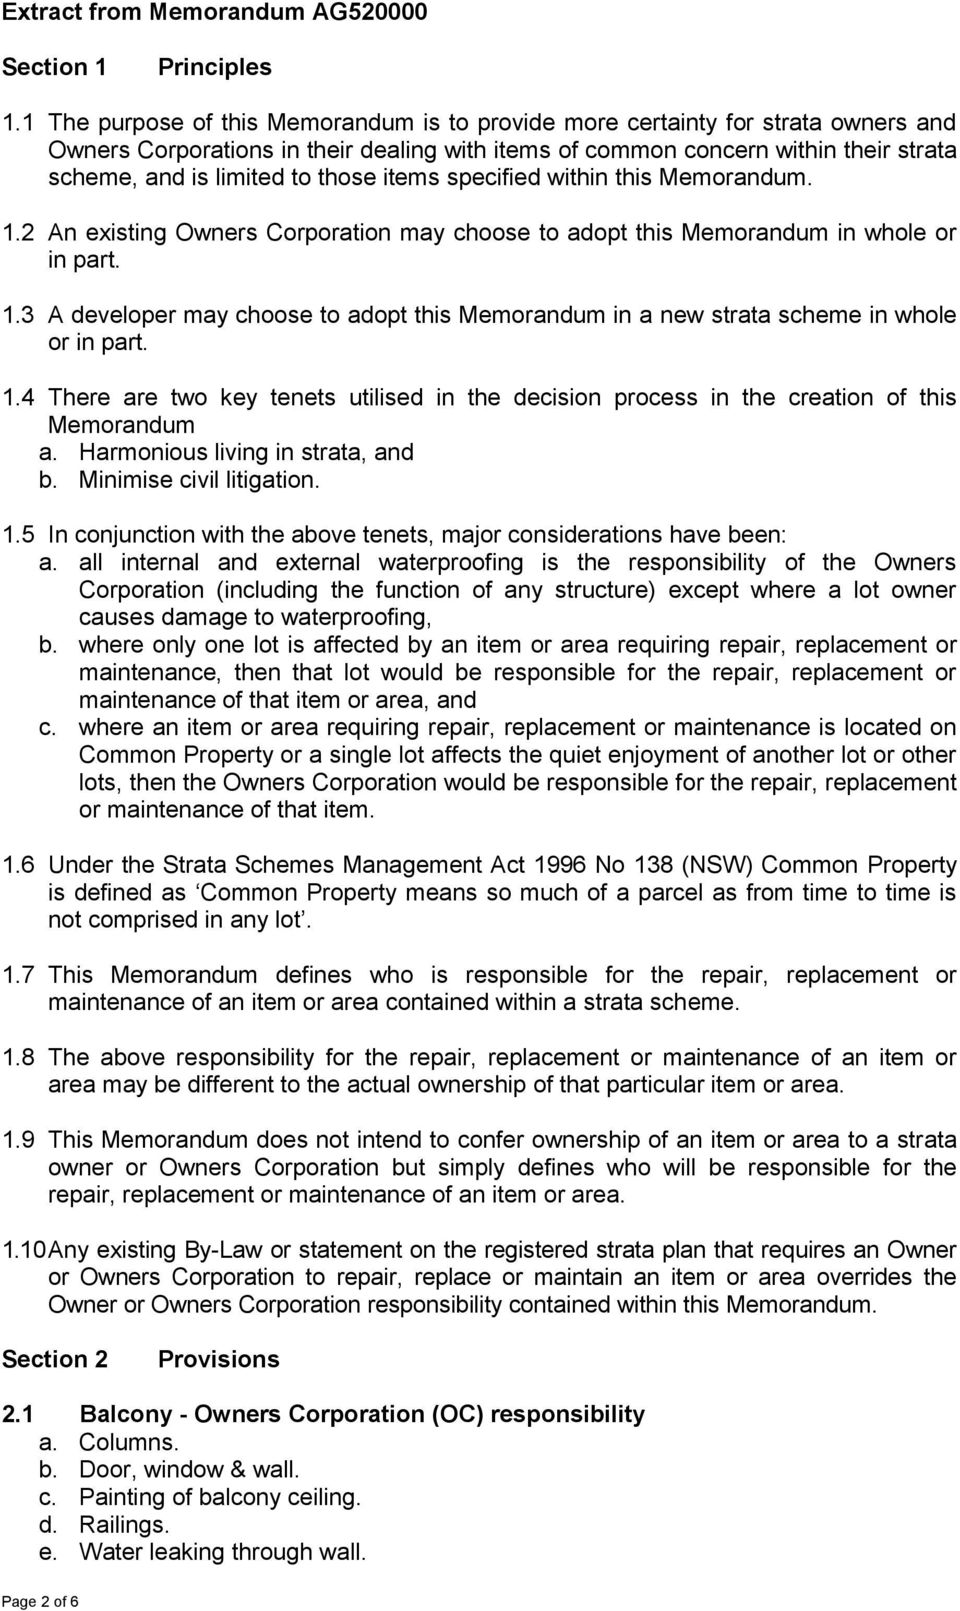 those items specified within this Memorandum. 1.2 An existing Owners Corporation may choose to adopt this Memorandum in whole or in part. 1.3 A developer may choose to adopt this Memorandum in a new strata scheme in whole or in part.